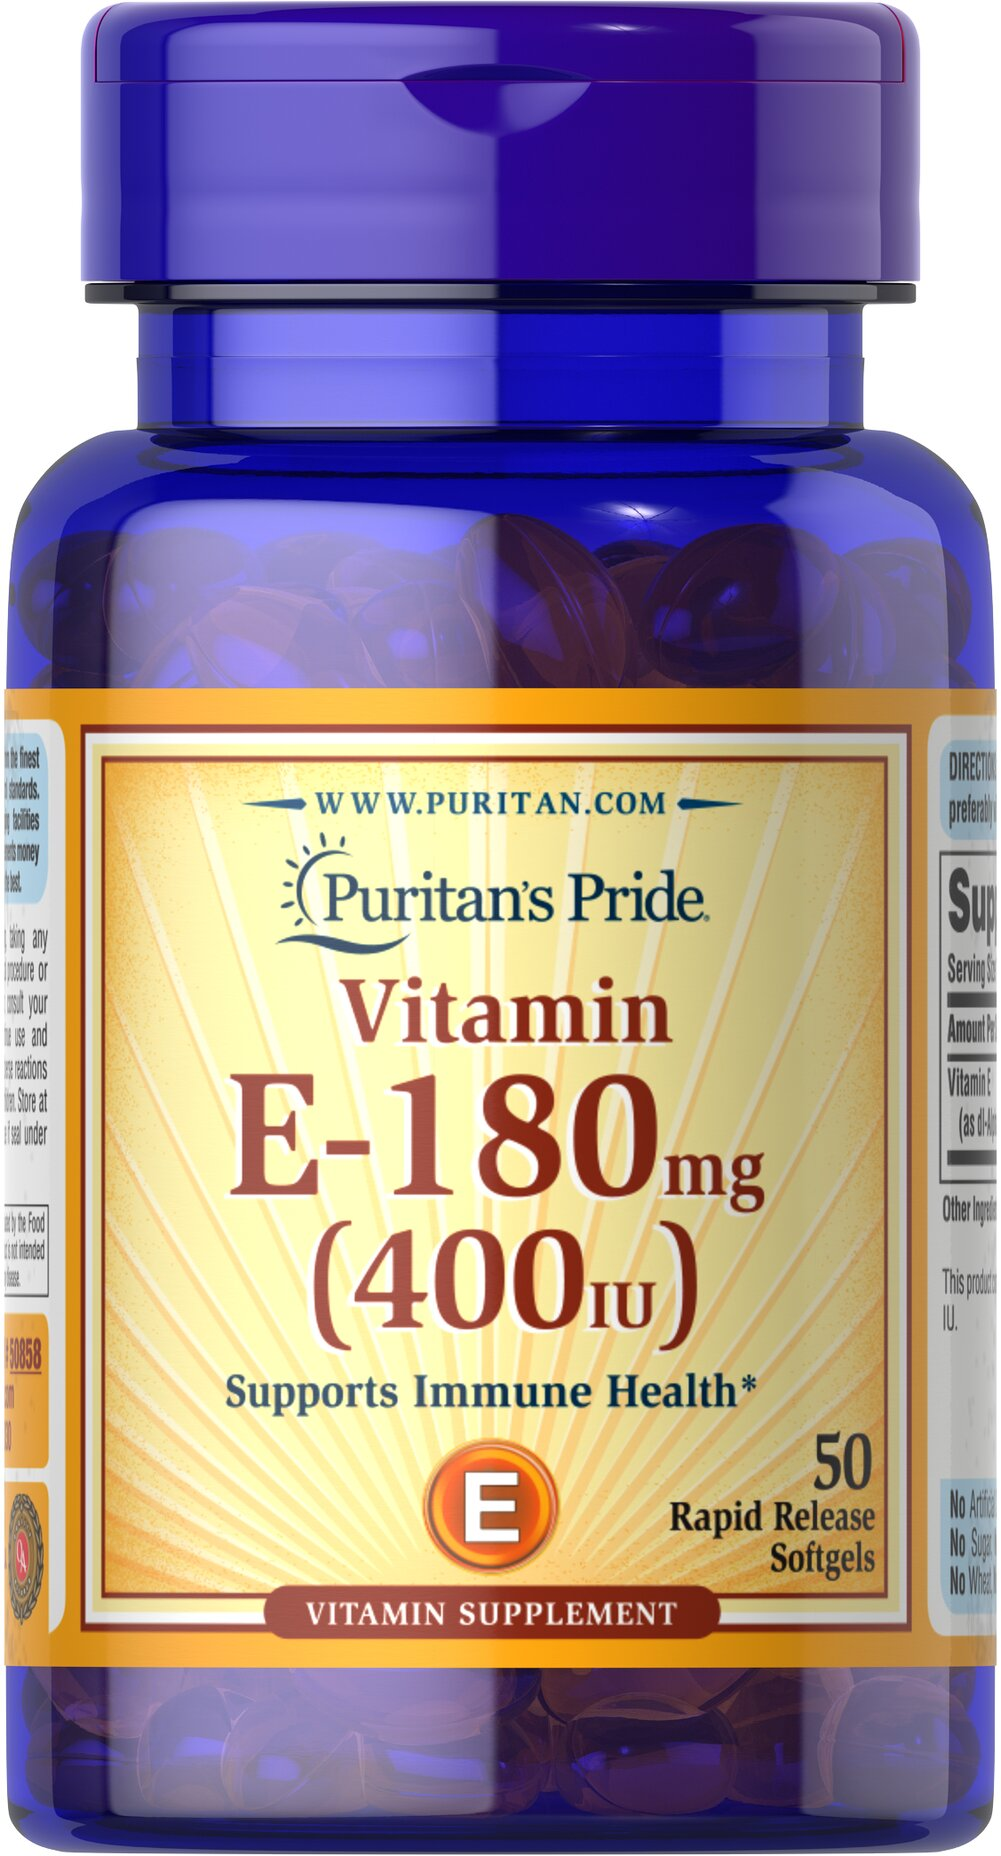 Vitamin E-400 IU <p>Features dl-Alpha Vitamin E, a synthetic form of Vitamin E</p><p>Promotes heart and circulatory health**</p><p>Contributes to healthy skin and immune function**</p><p>Rapid release liquid softgels are easy to swallow</p><p>One a day formula</p> 50 Softgels 400 IU $7.99